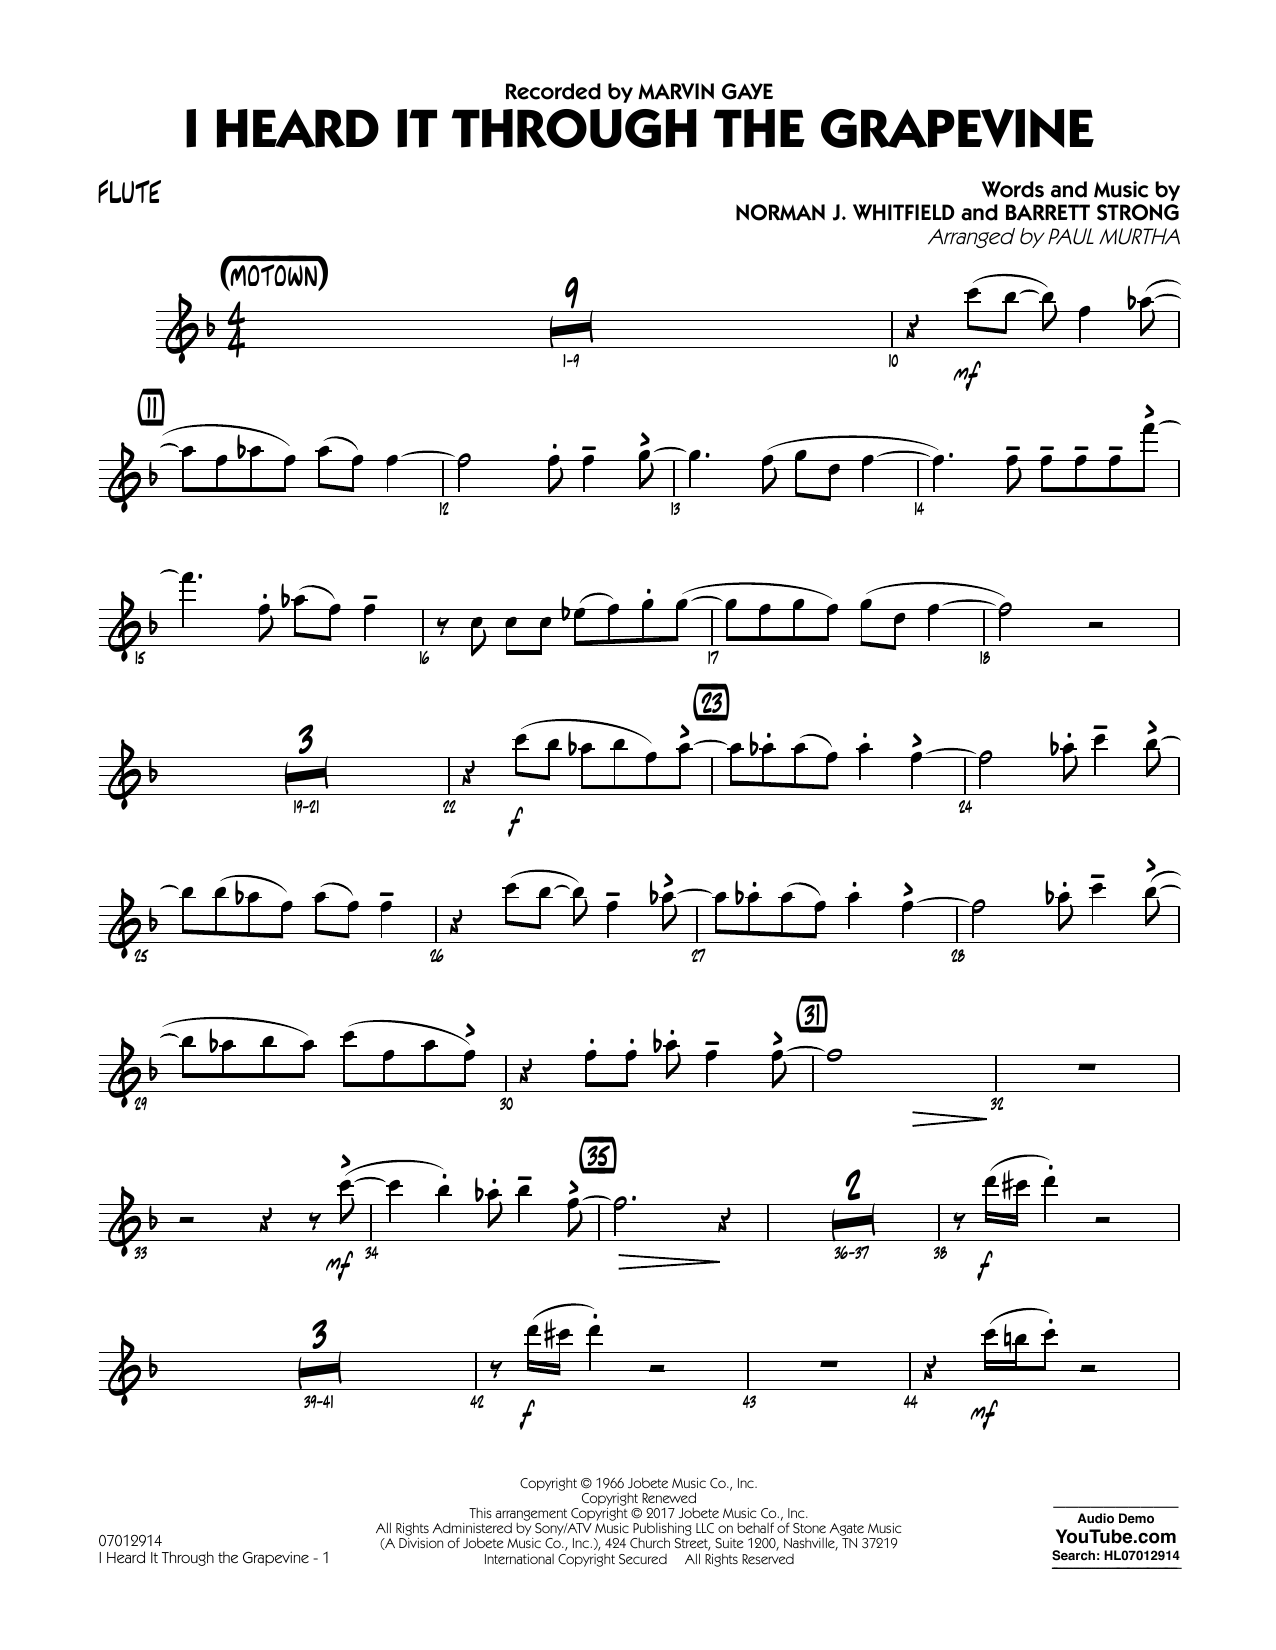 I Heard It Through the Grapevine - Flute Sheet Music